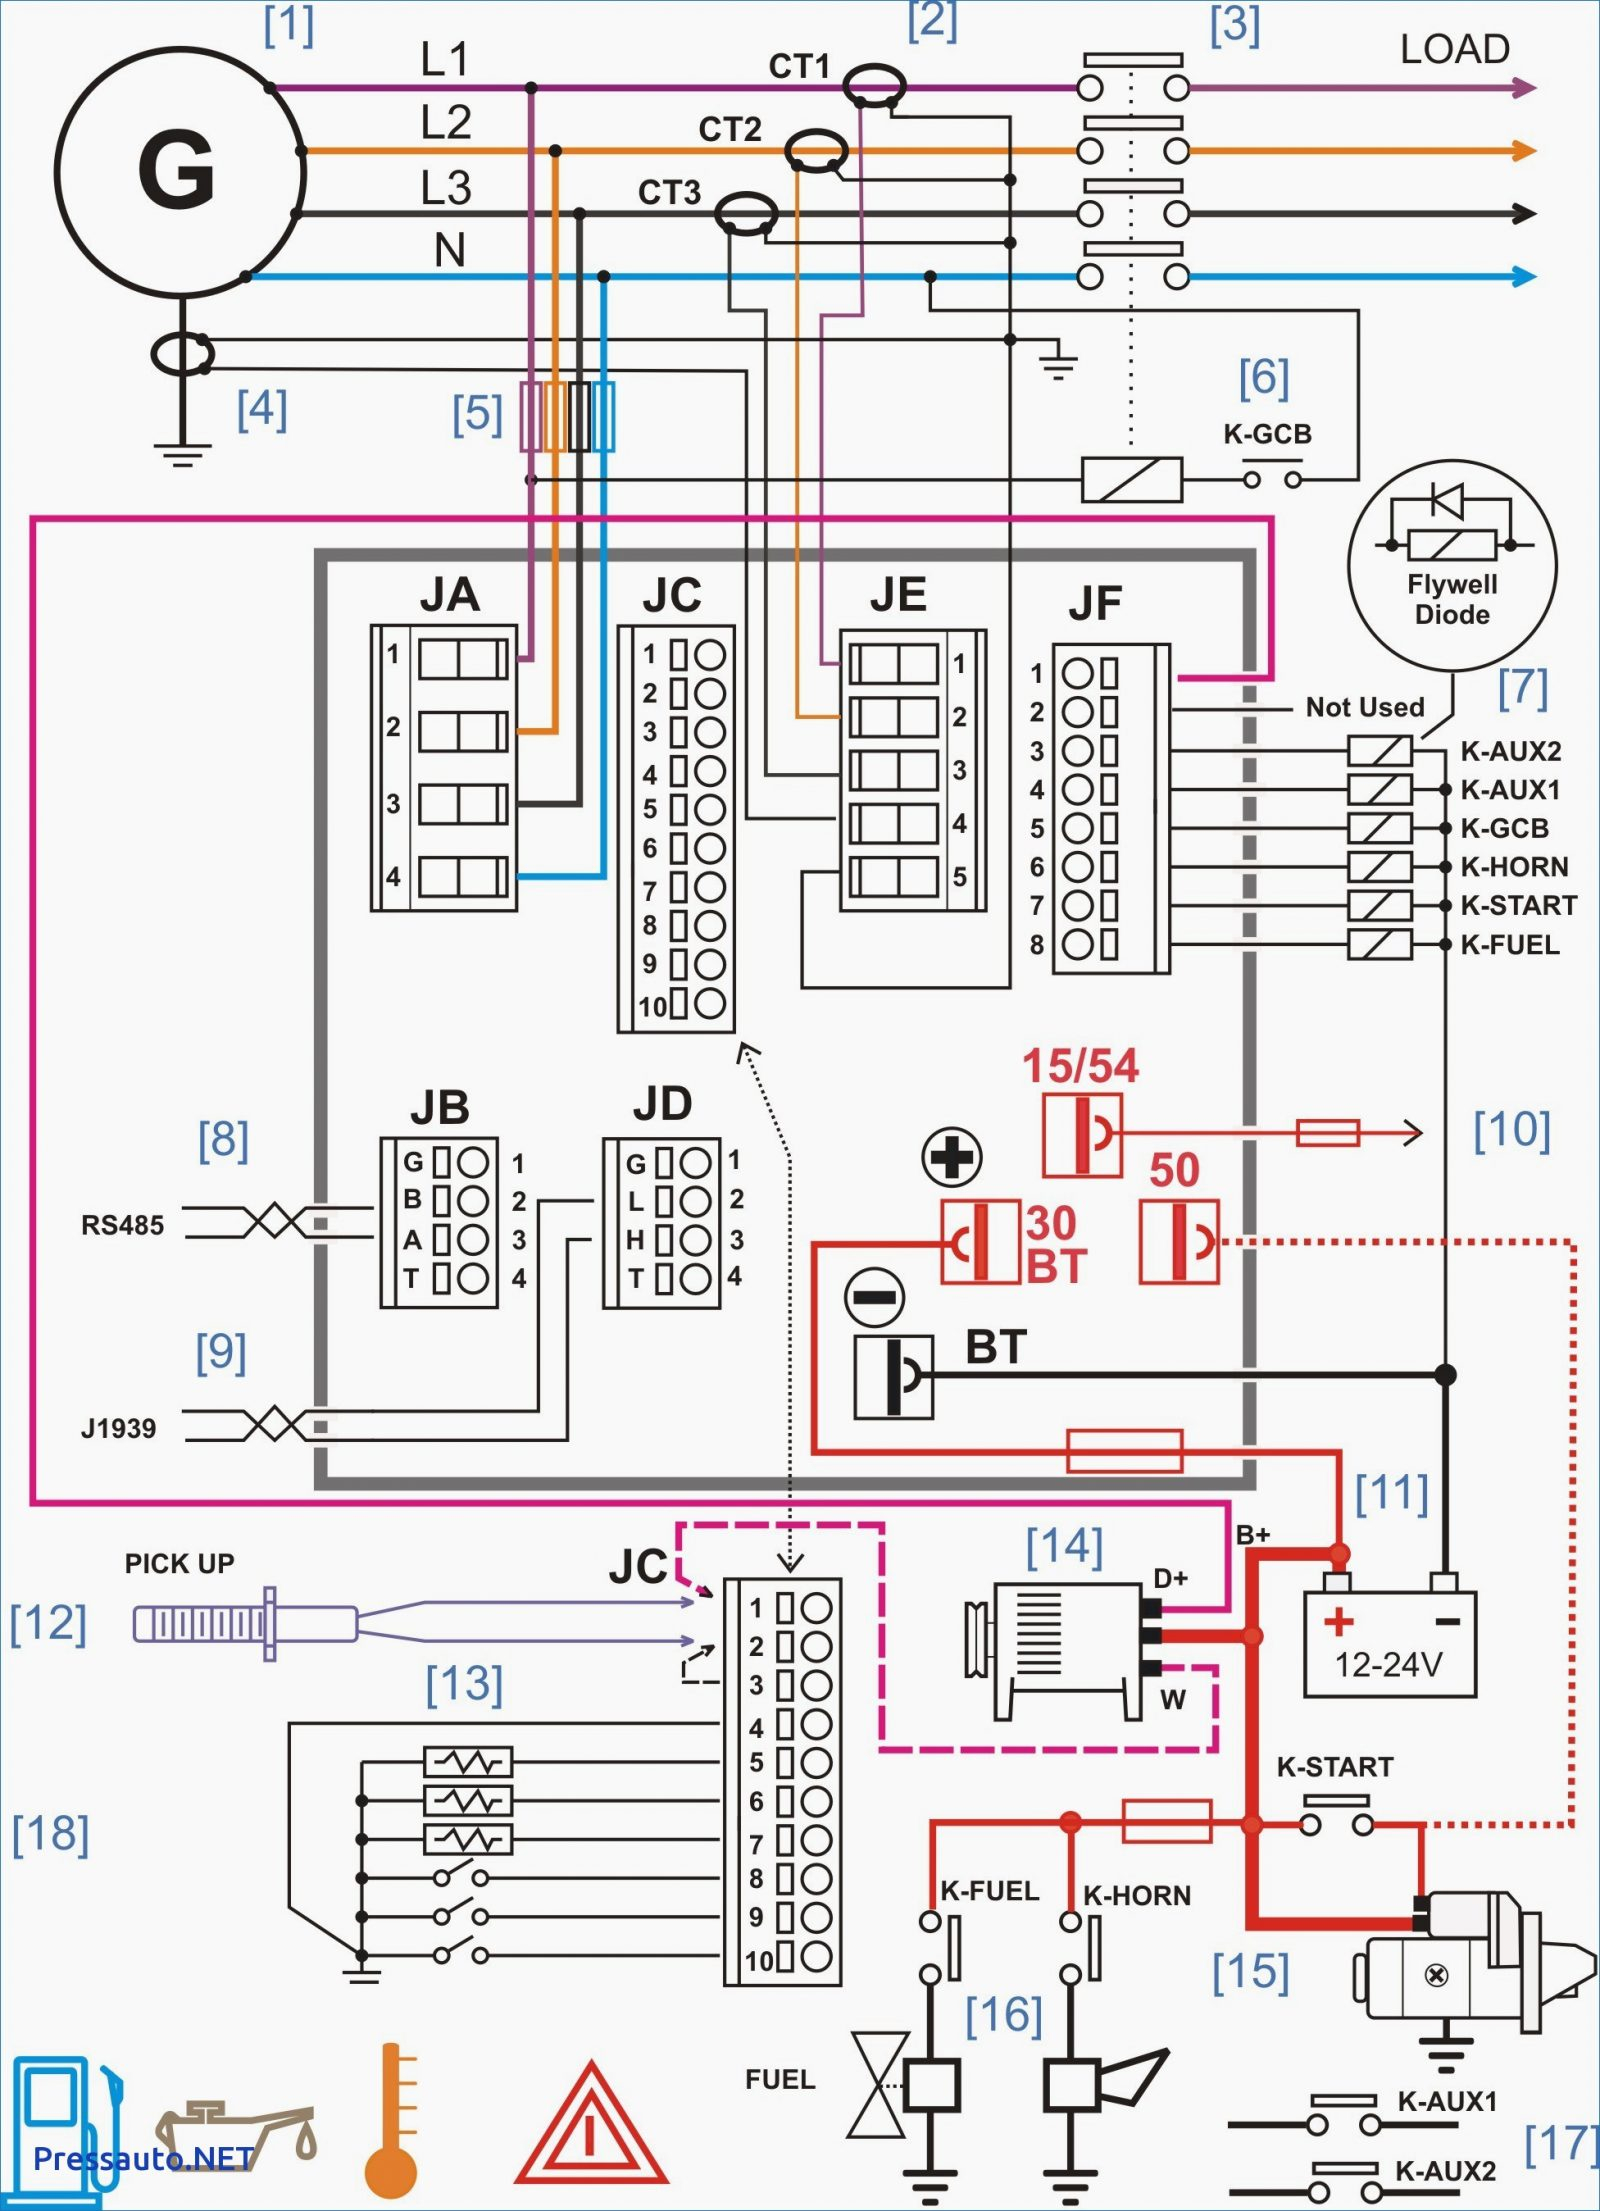 asco automatic transfer switch series 300 wiring diagram Download-Asco 7000 Series Automatic Transfer Switch Wiring Diagram New Diagramuto Transfer Switchts Workingnd Control Panel Wiring 20-g